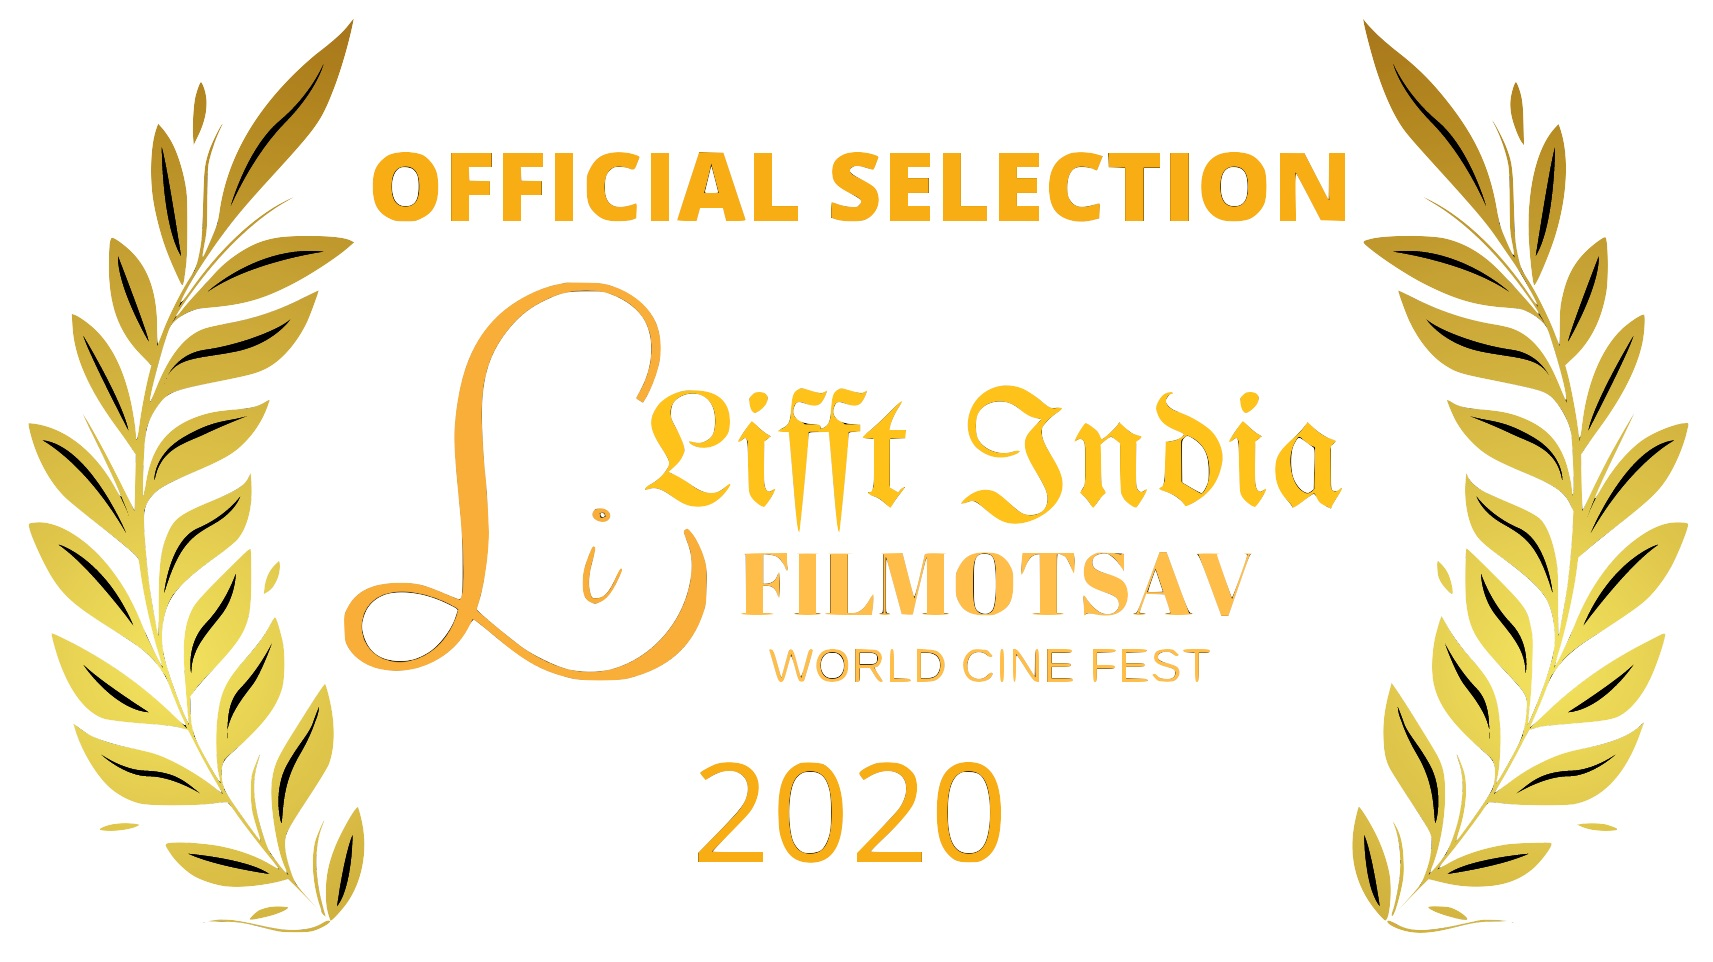 LIFFT INDIA LAUREL   OFFICIAL SELECTION 2021 TRANSPARENT - The Importance of Festivals